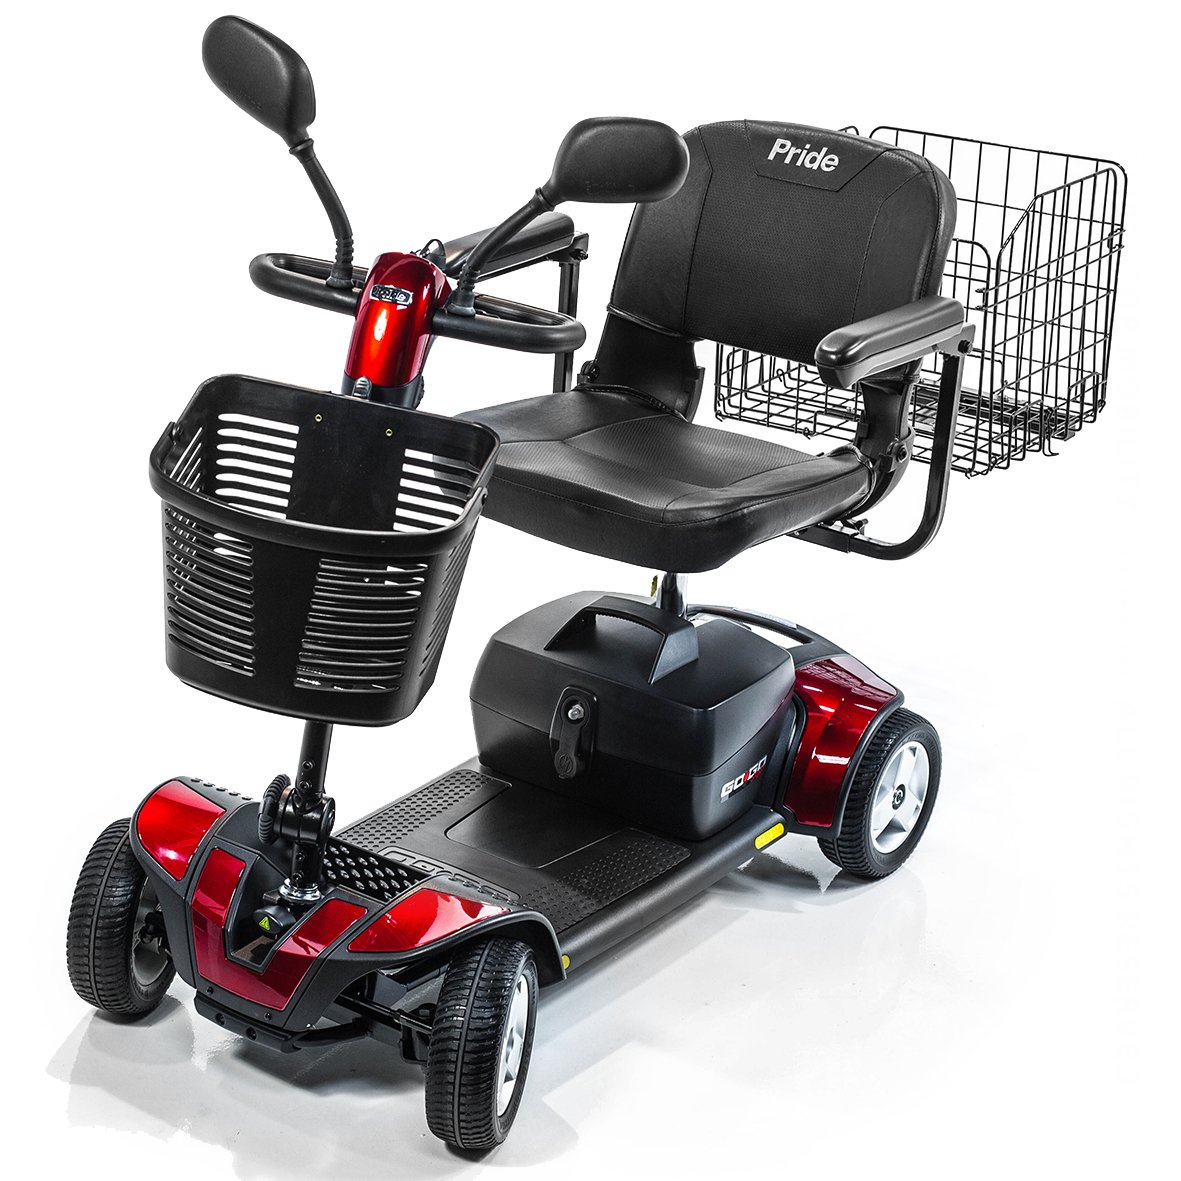 Amazon.com: Pride Movilidad Go-Go Deporte 4-Wheel Travel ...